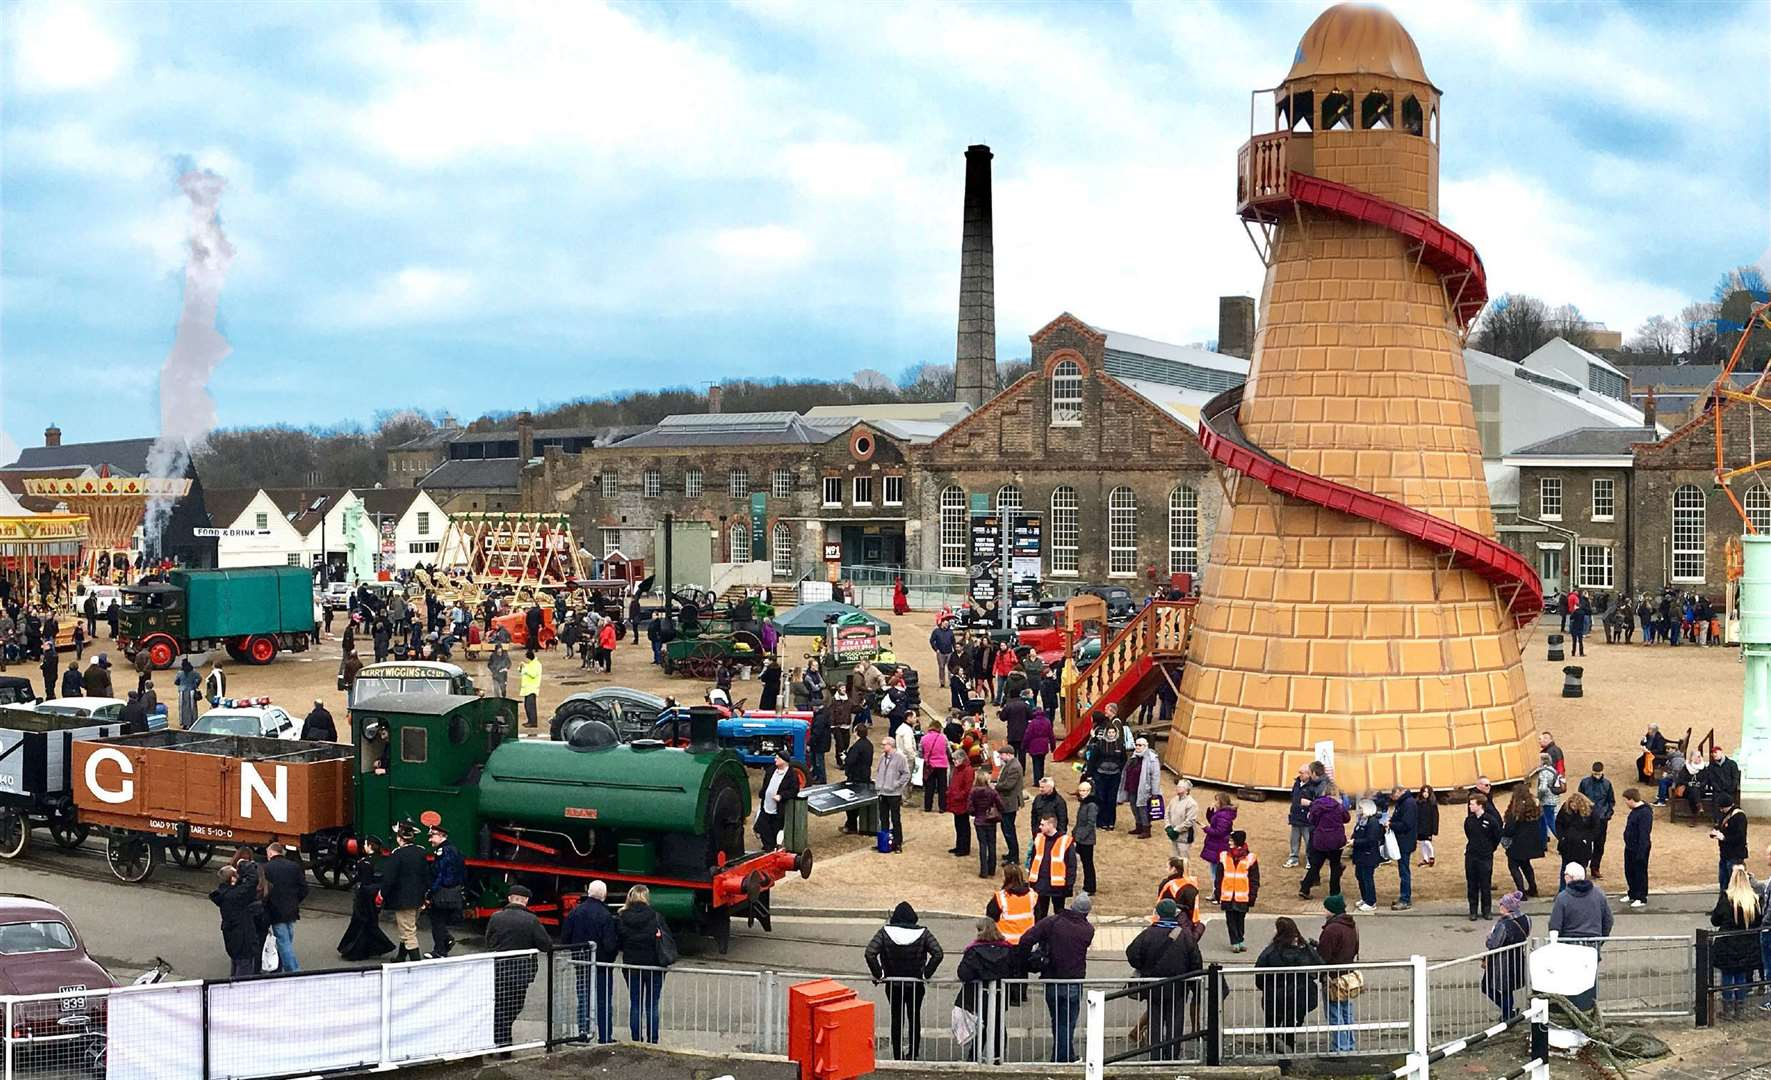 Head to The Festival of Steam & Transport this Easter Weekend in Chatham!